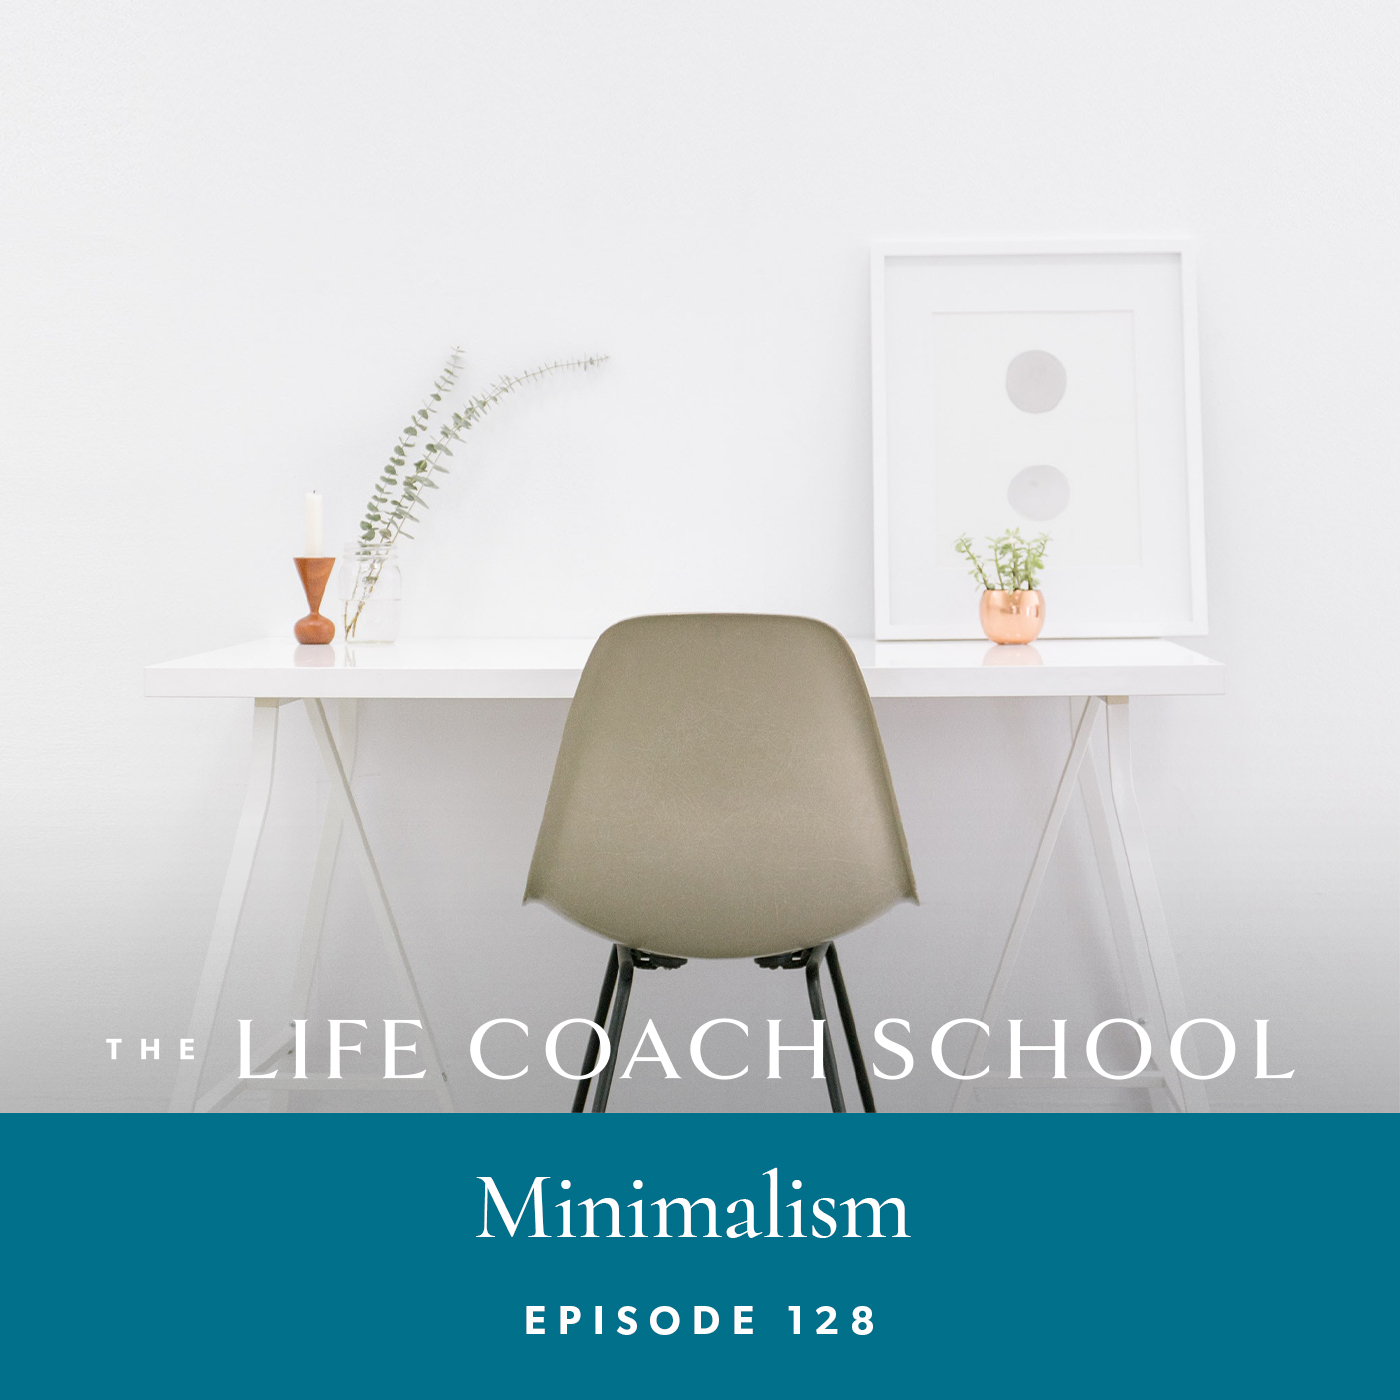 The Life Coach School Podcast with Brooke Castillo | Episode 128 | Minimalism